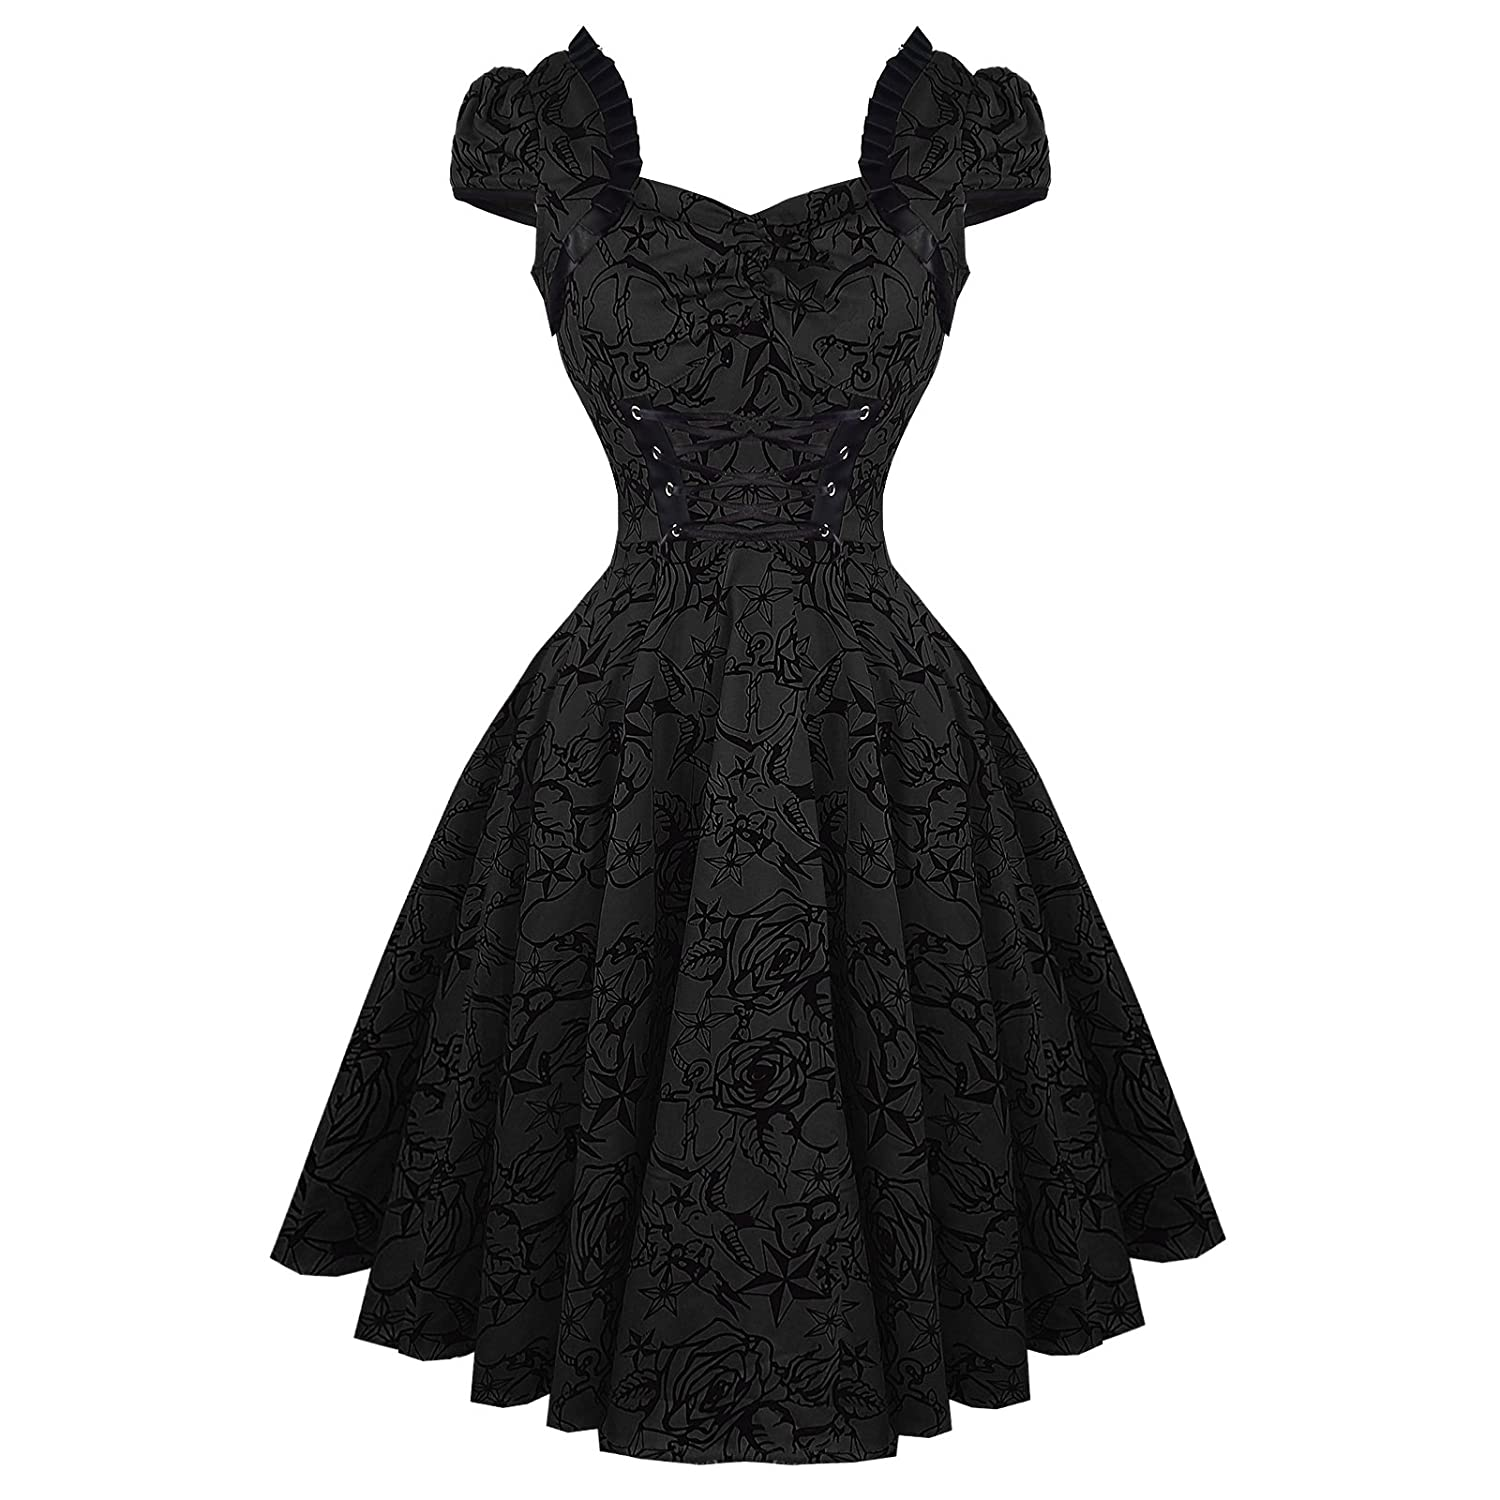 1950s Swing Dresses Hearts & Roses London Black Tattoo 1950s Rockabilly Vintage Party Prom Dress Excellent Quality £29.99 AT vintagedancer.com